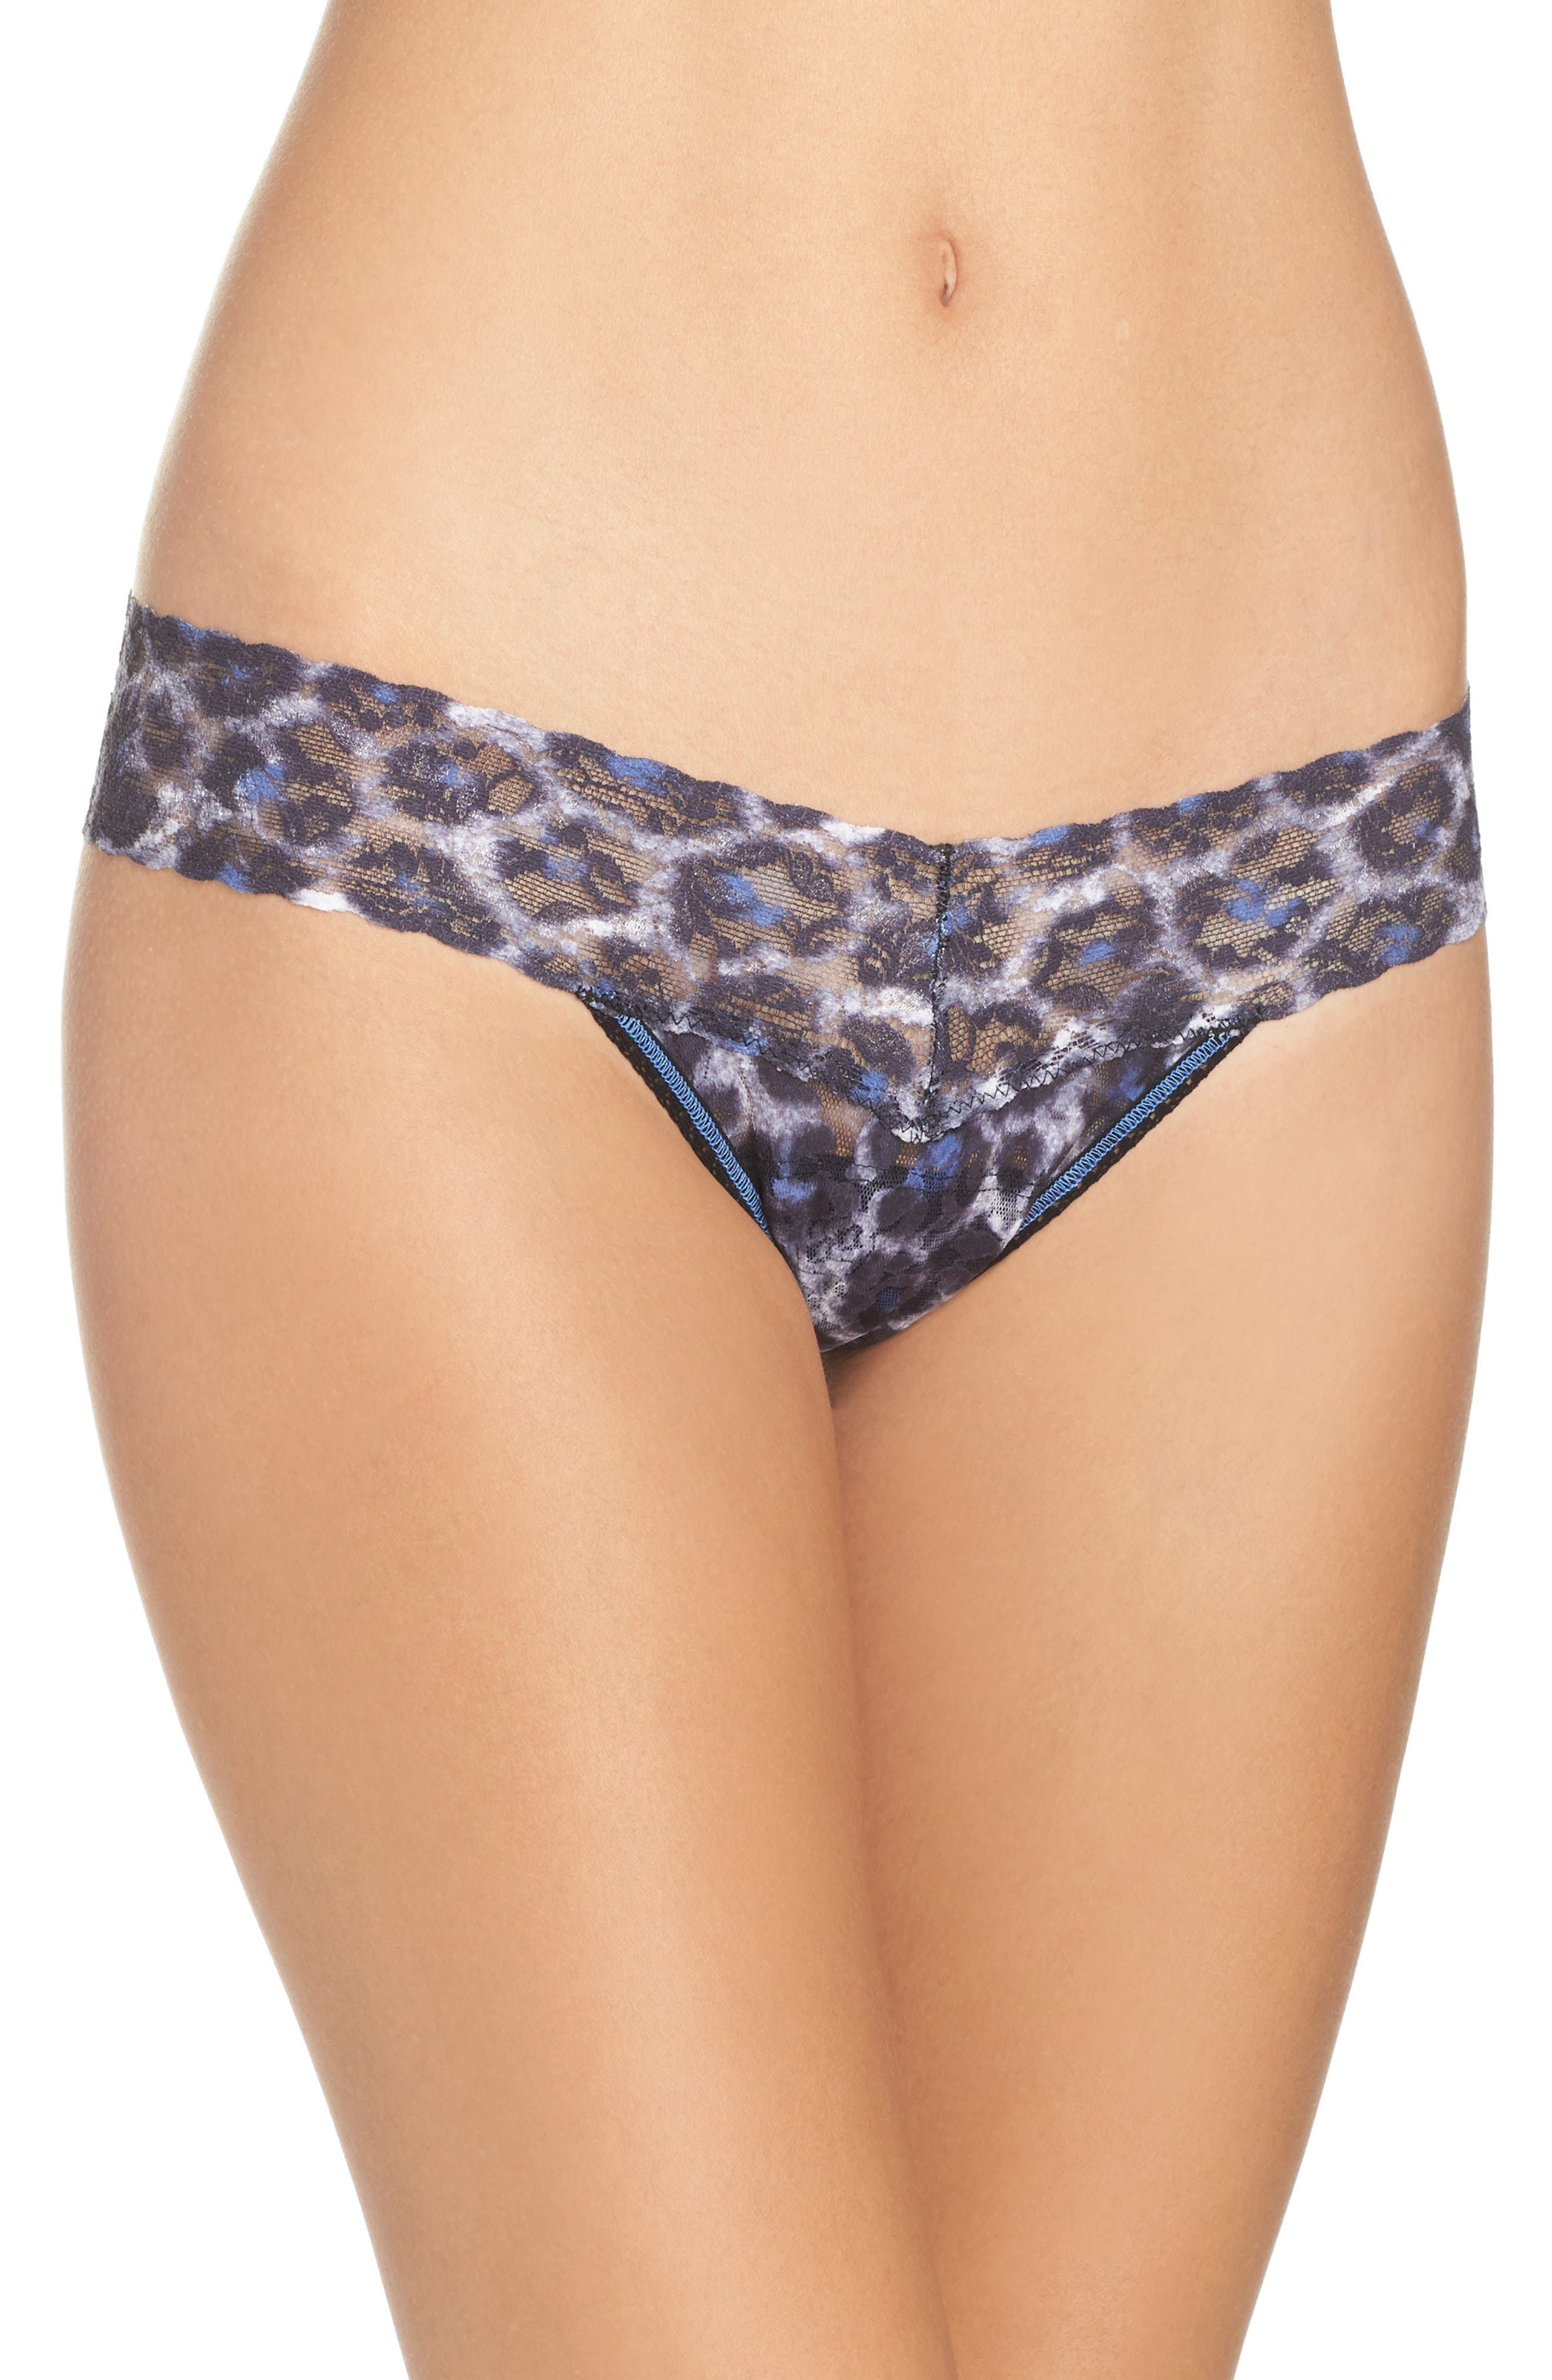 Hanky Panky Mysterious Feline Low Rise Thong